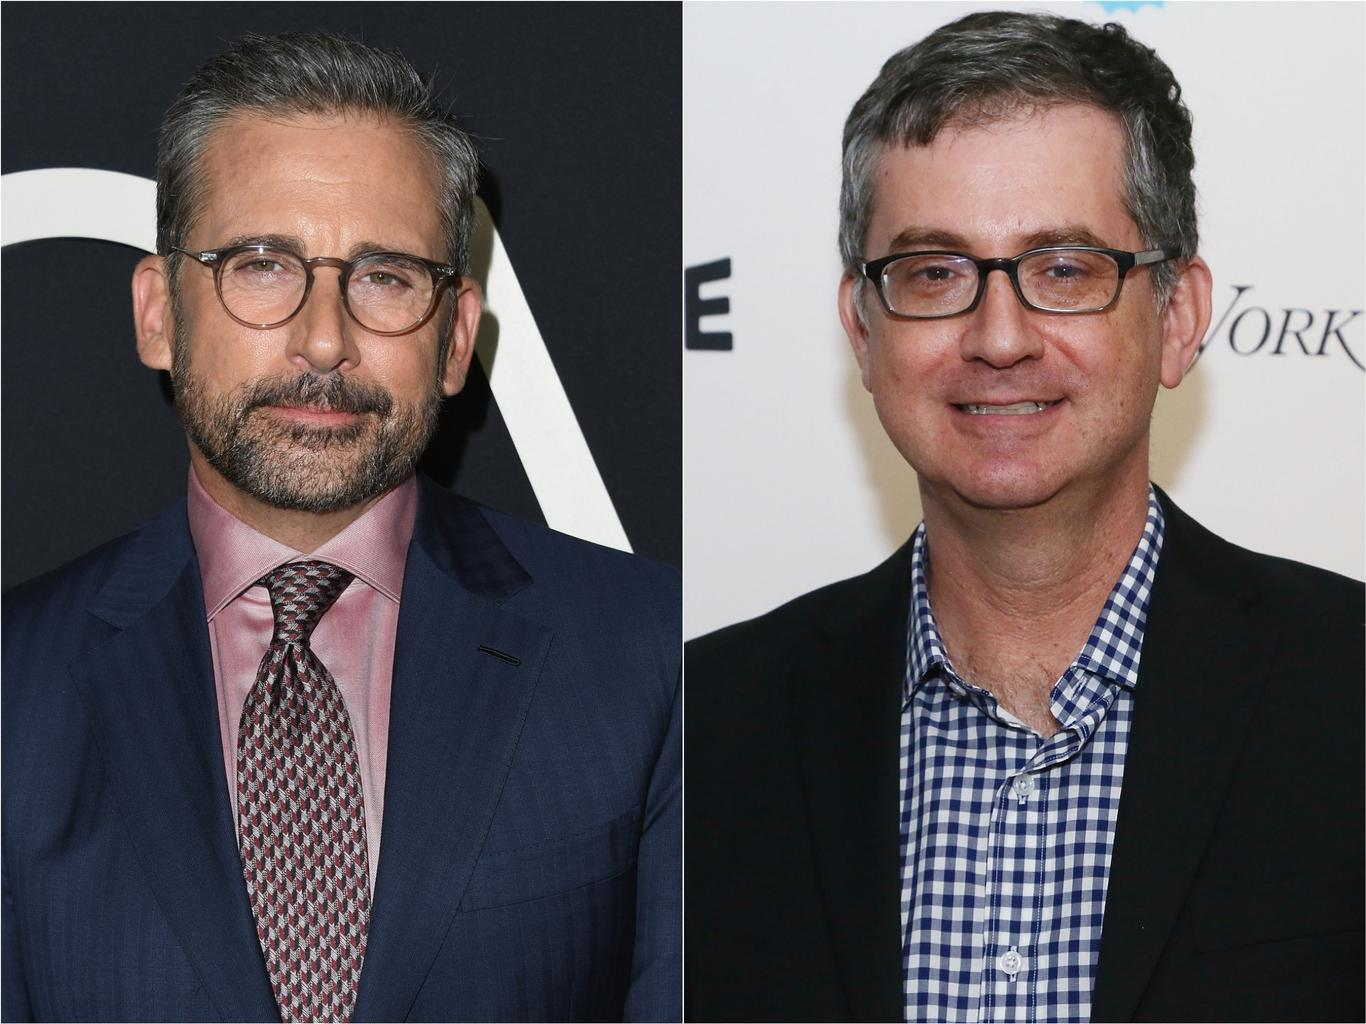 Steve Carell And The US Office's Greg Daniels Working On Space Force Comedy   Movies   News